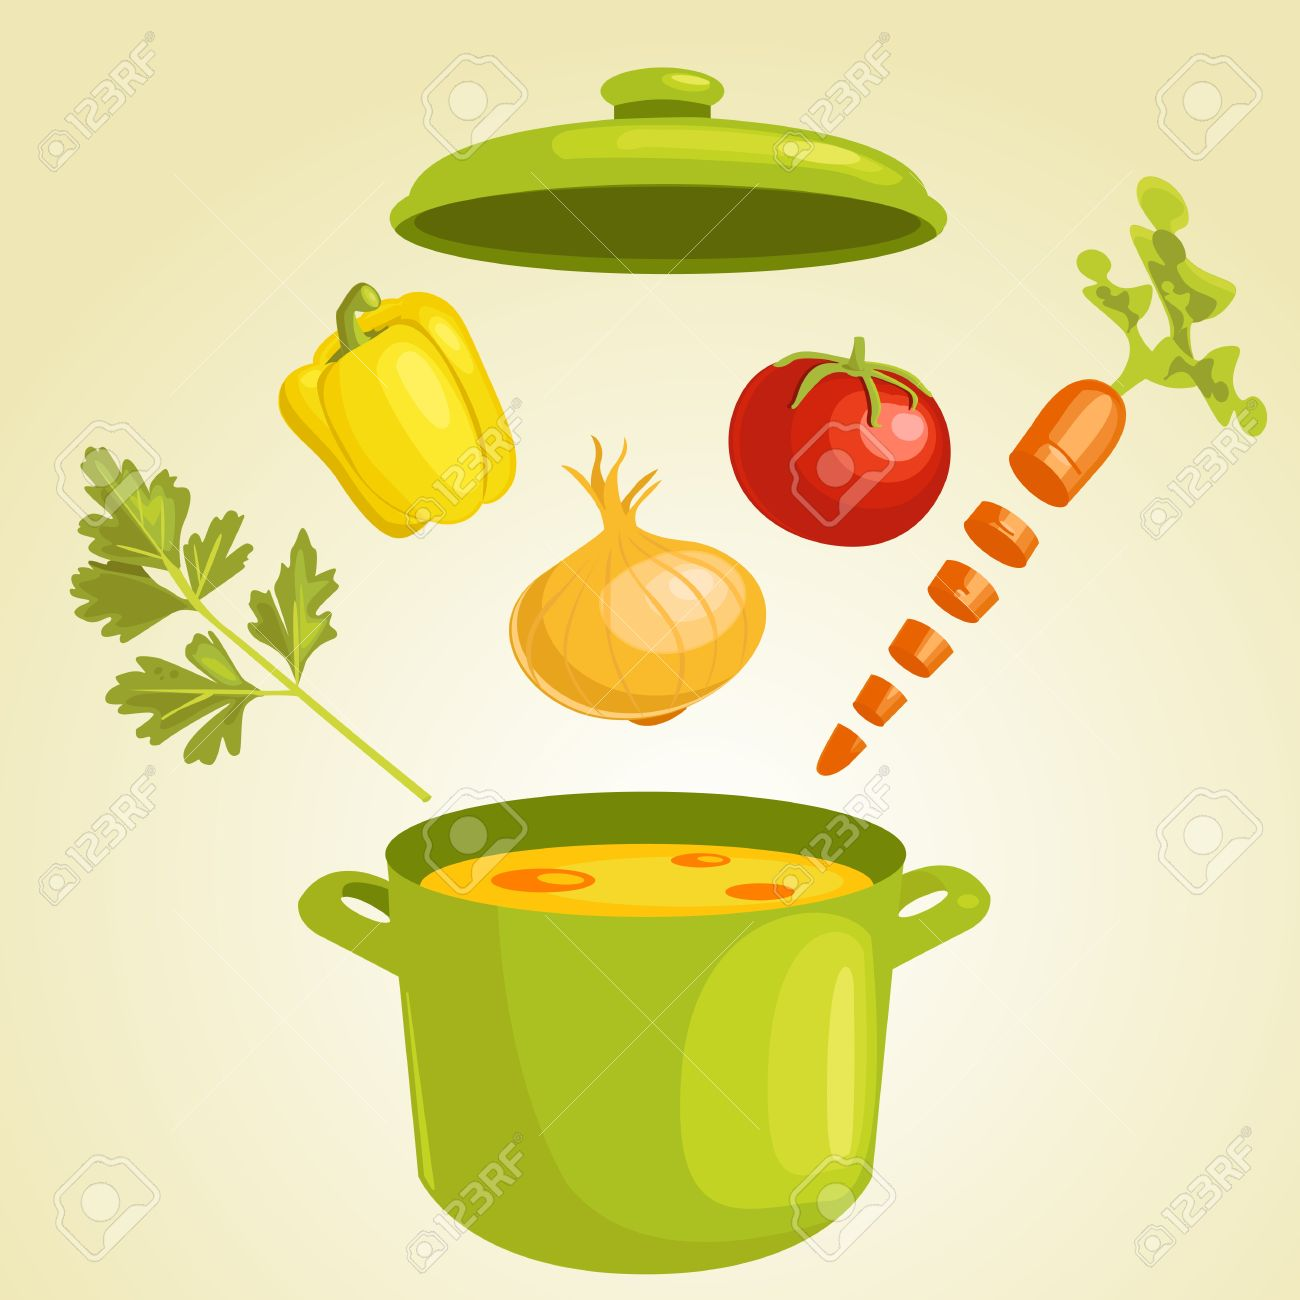 Vegetable soup with ingredients,  illustration Stock Vector - 9297522